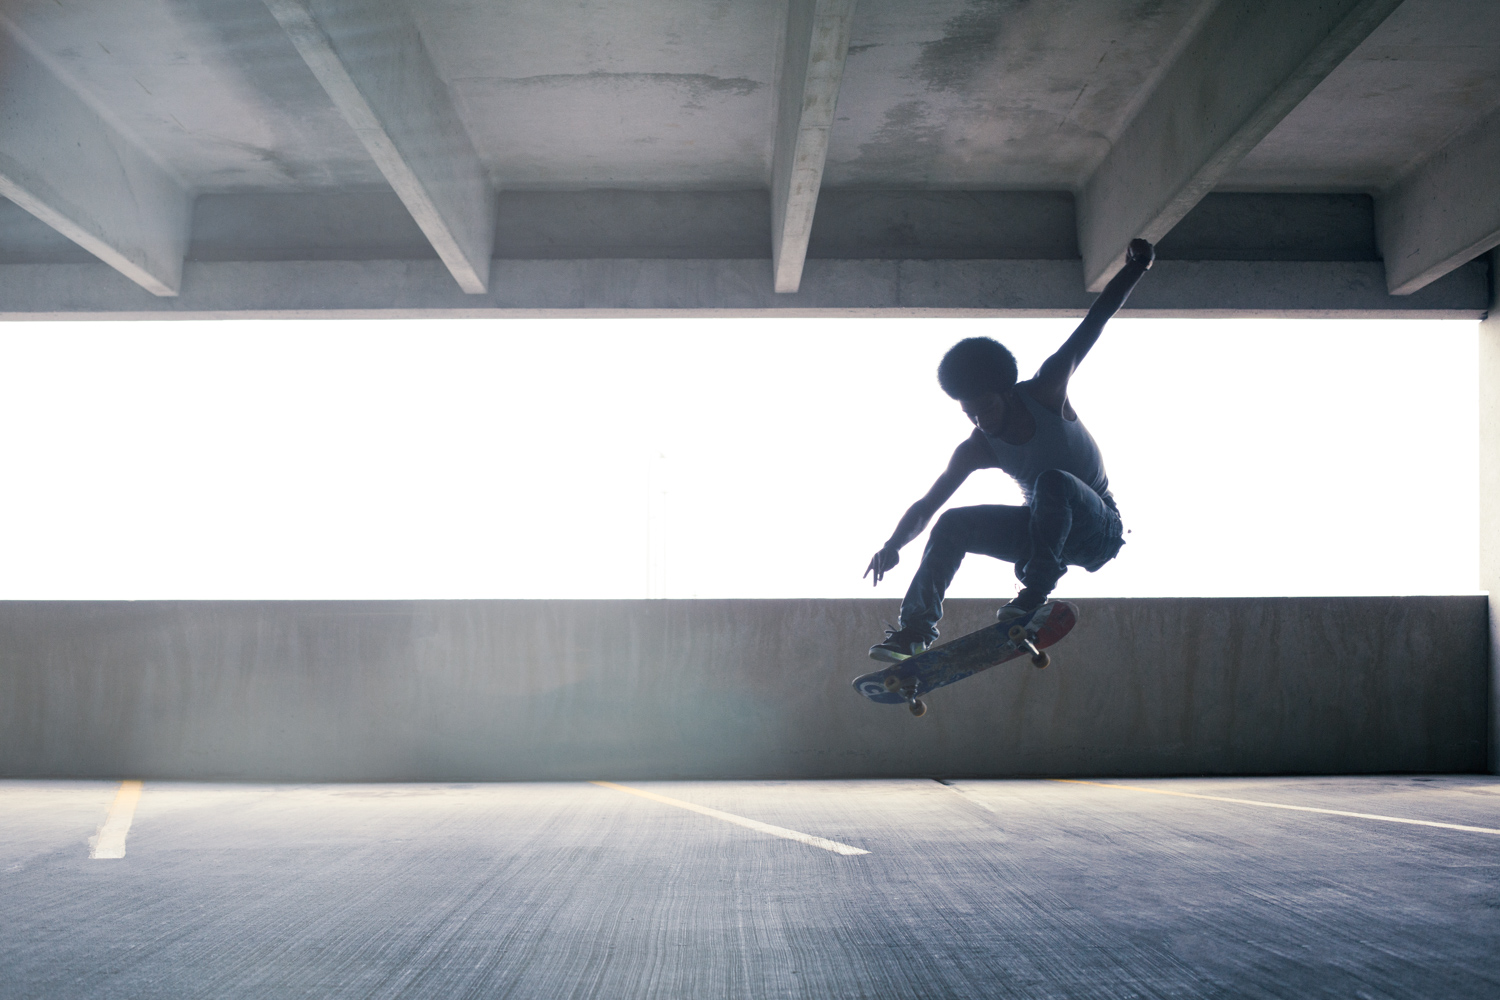 skateboarding-in-the-paking-garage